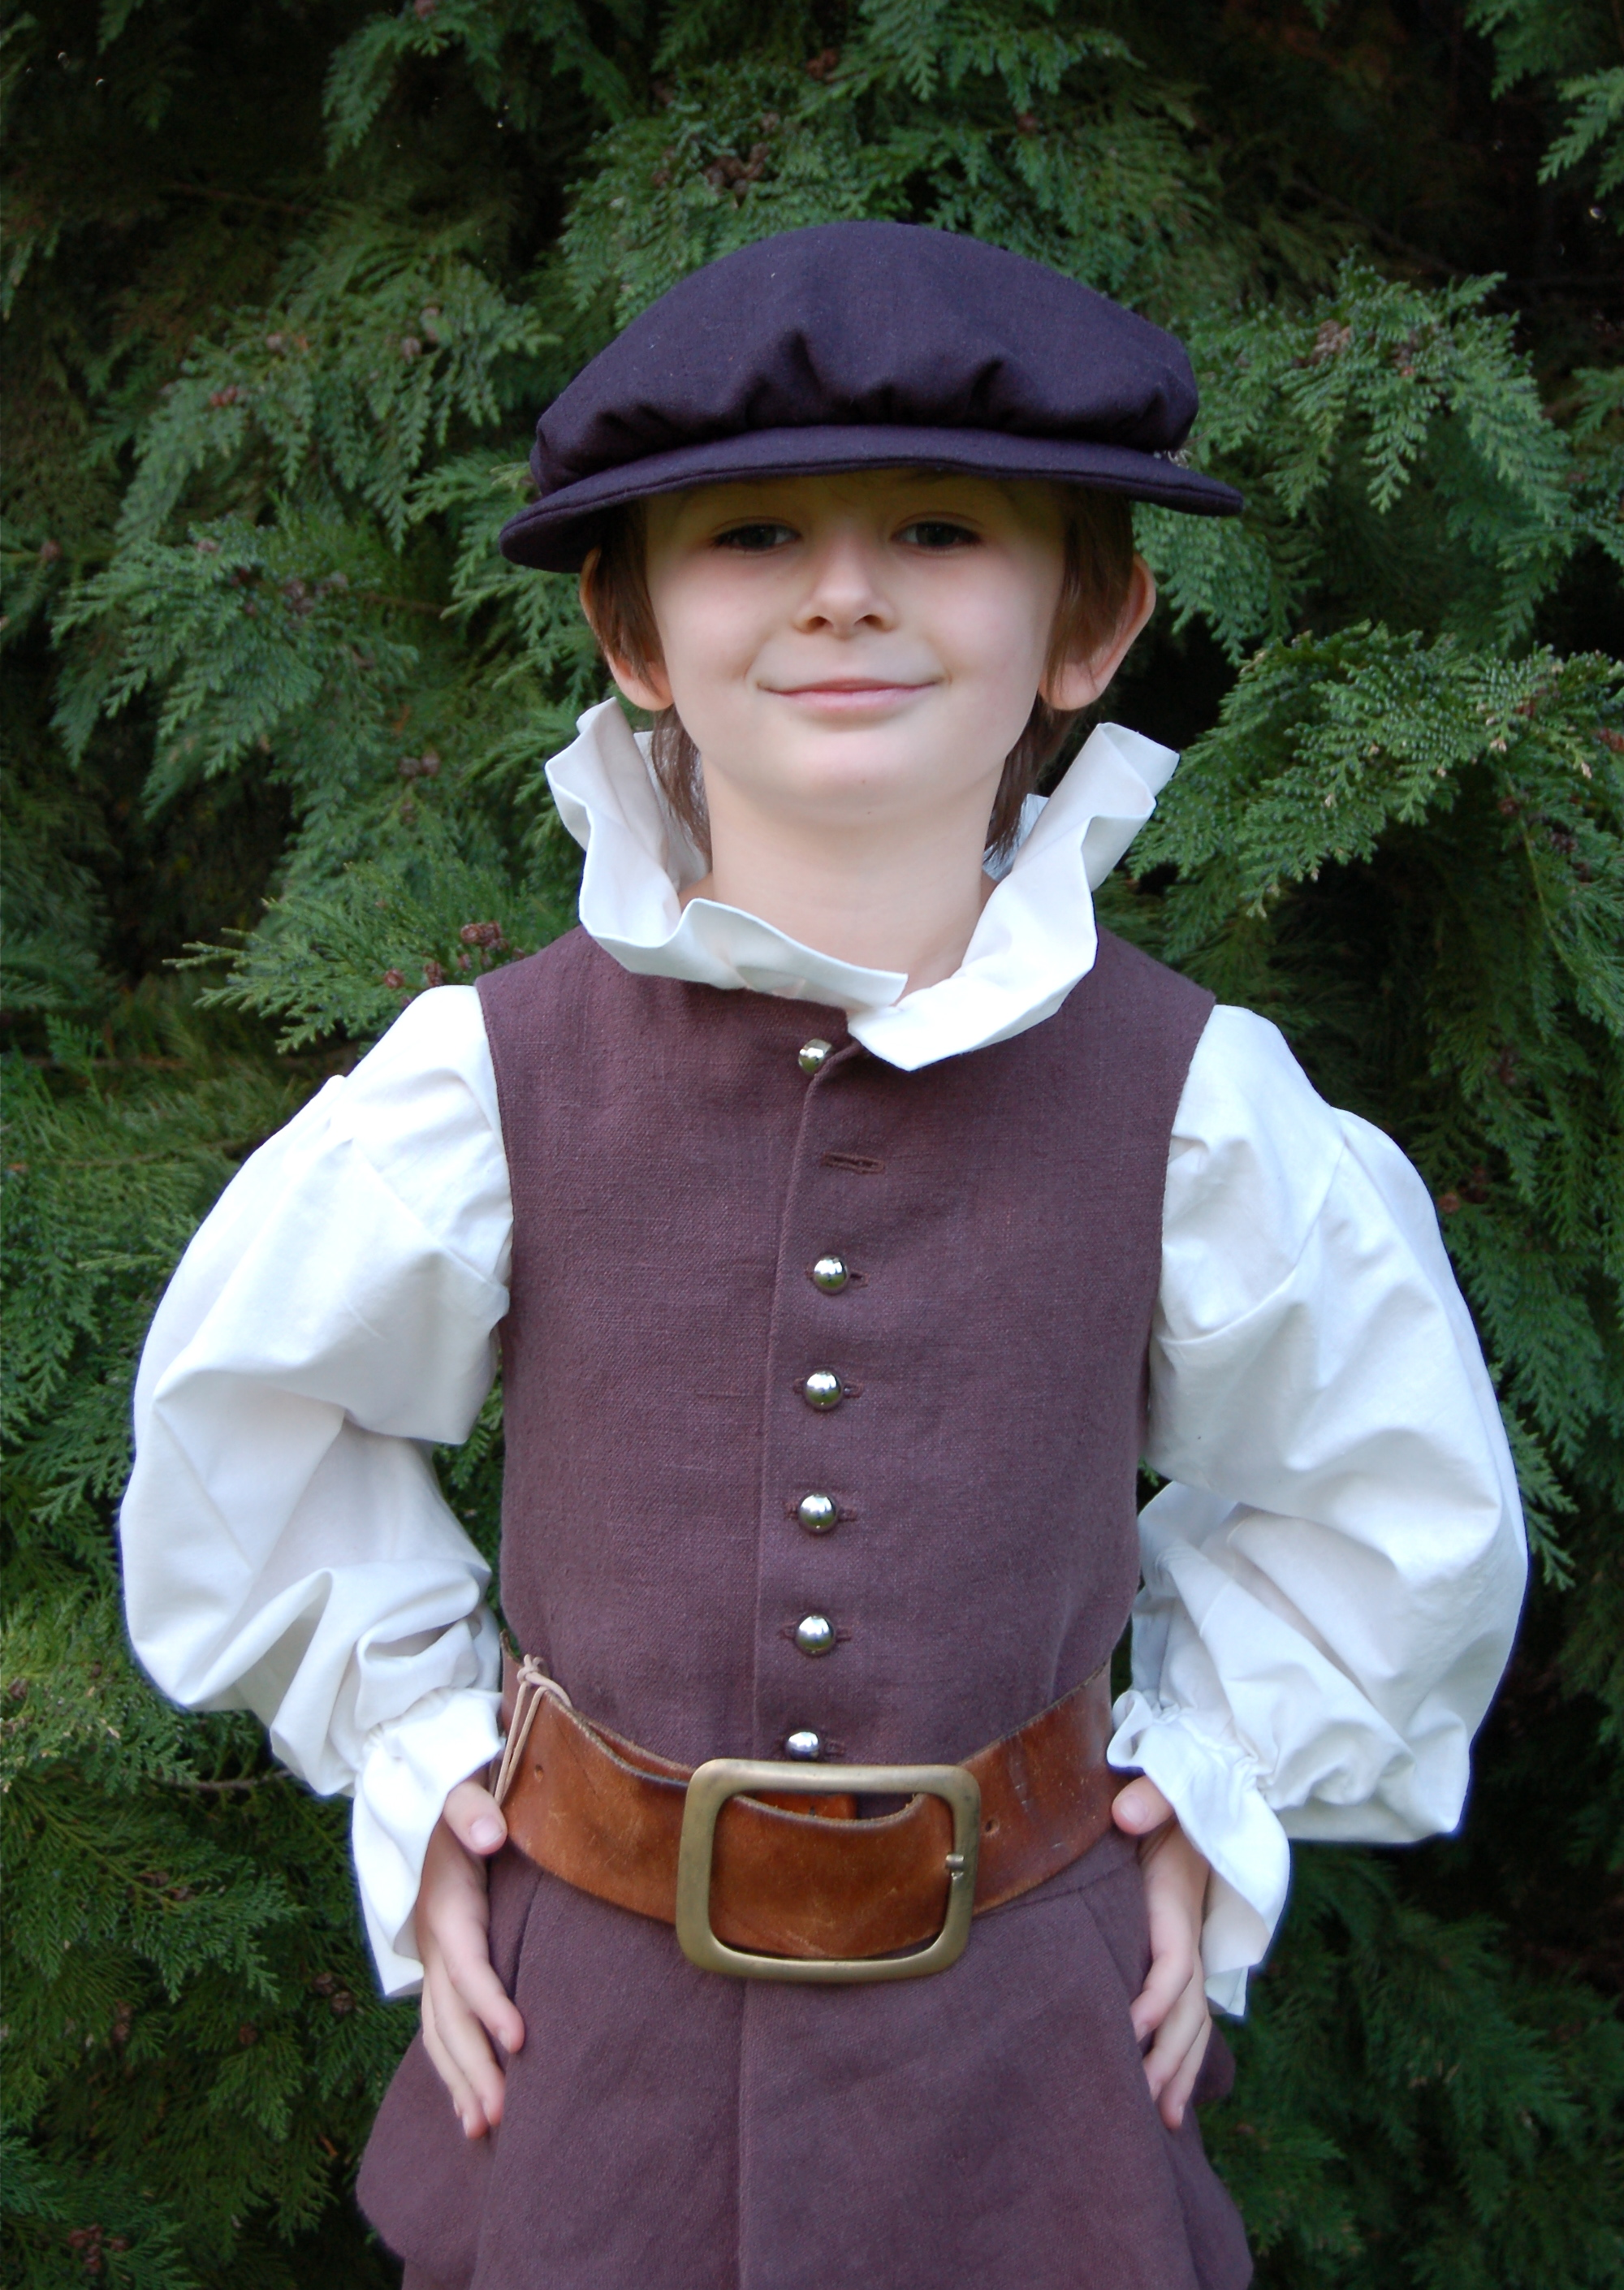 Back in January 2011 I made a Tudor boyu0027s costume for F for school. I blogged about it here and it is one of the most visited posts on my blog.  sc 1 st  The Linen Cat Blog - WordPress.com & Tudor Boy Revisitedu2026(and other costumes) u2013 The Linen Cat Blog